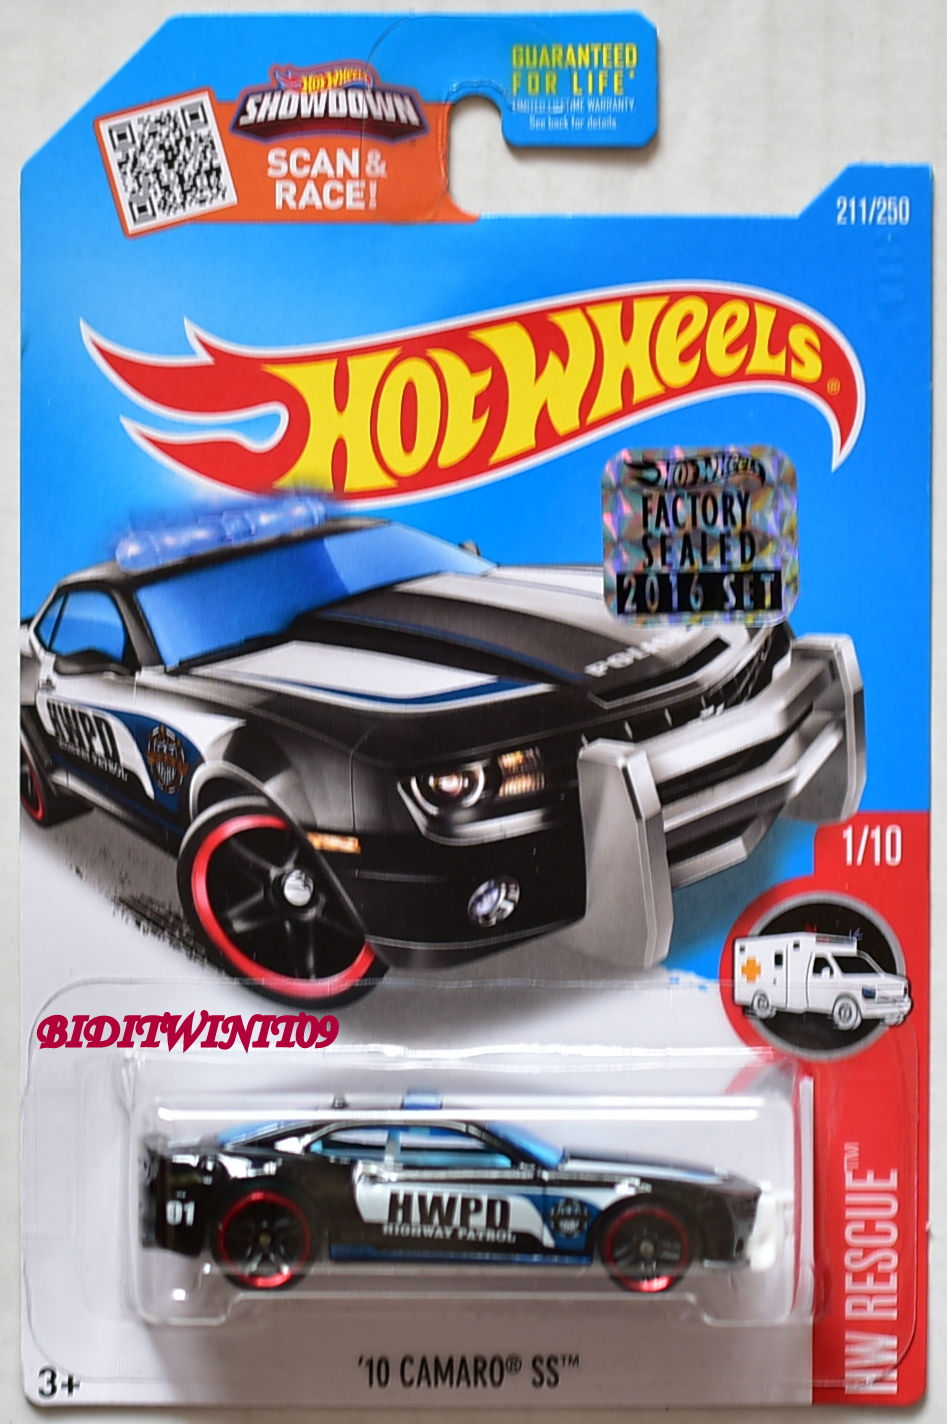 HOT WHEELS 2016 HW RESCUE '10 CAMARO SS #1/10 BLACK FACTORY SEALED